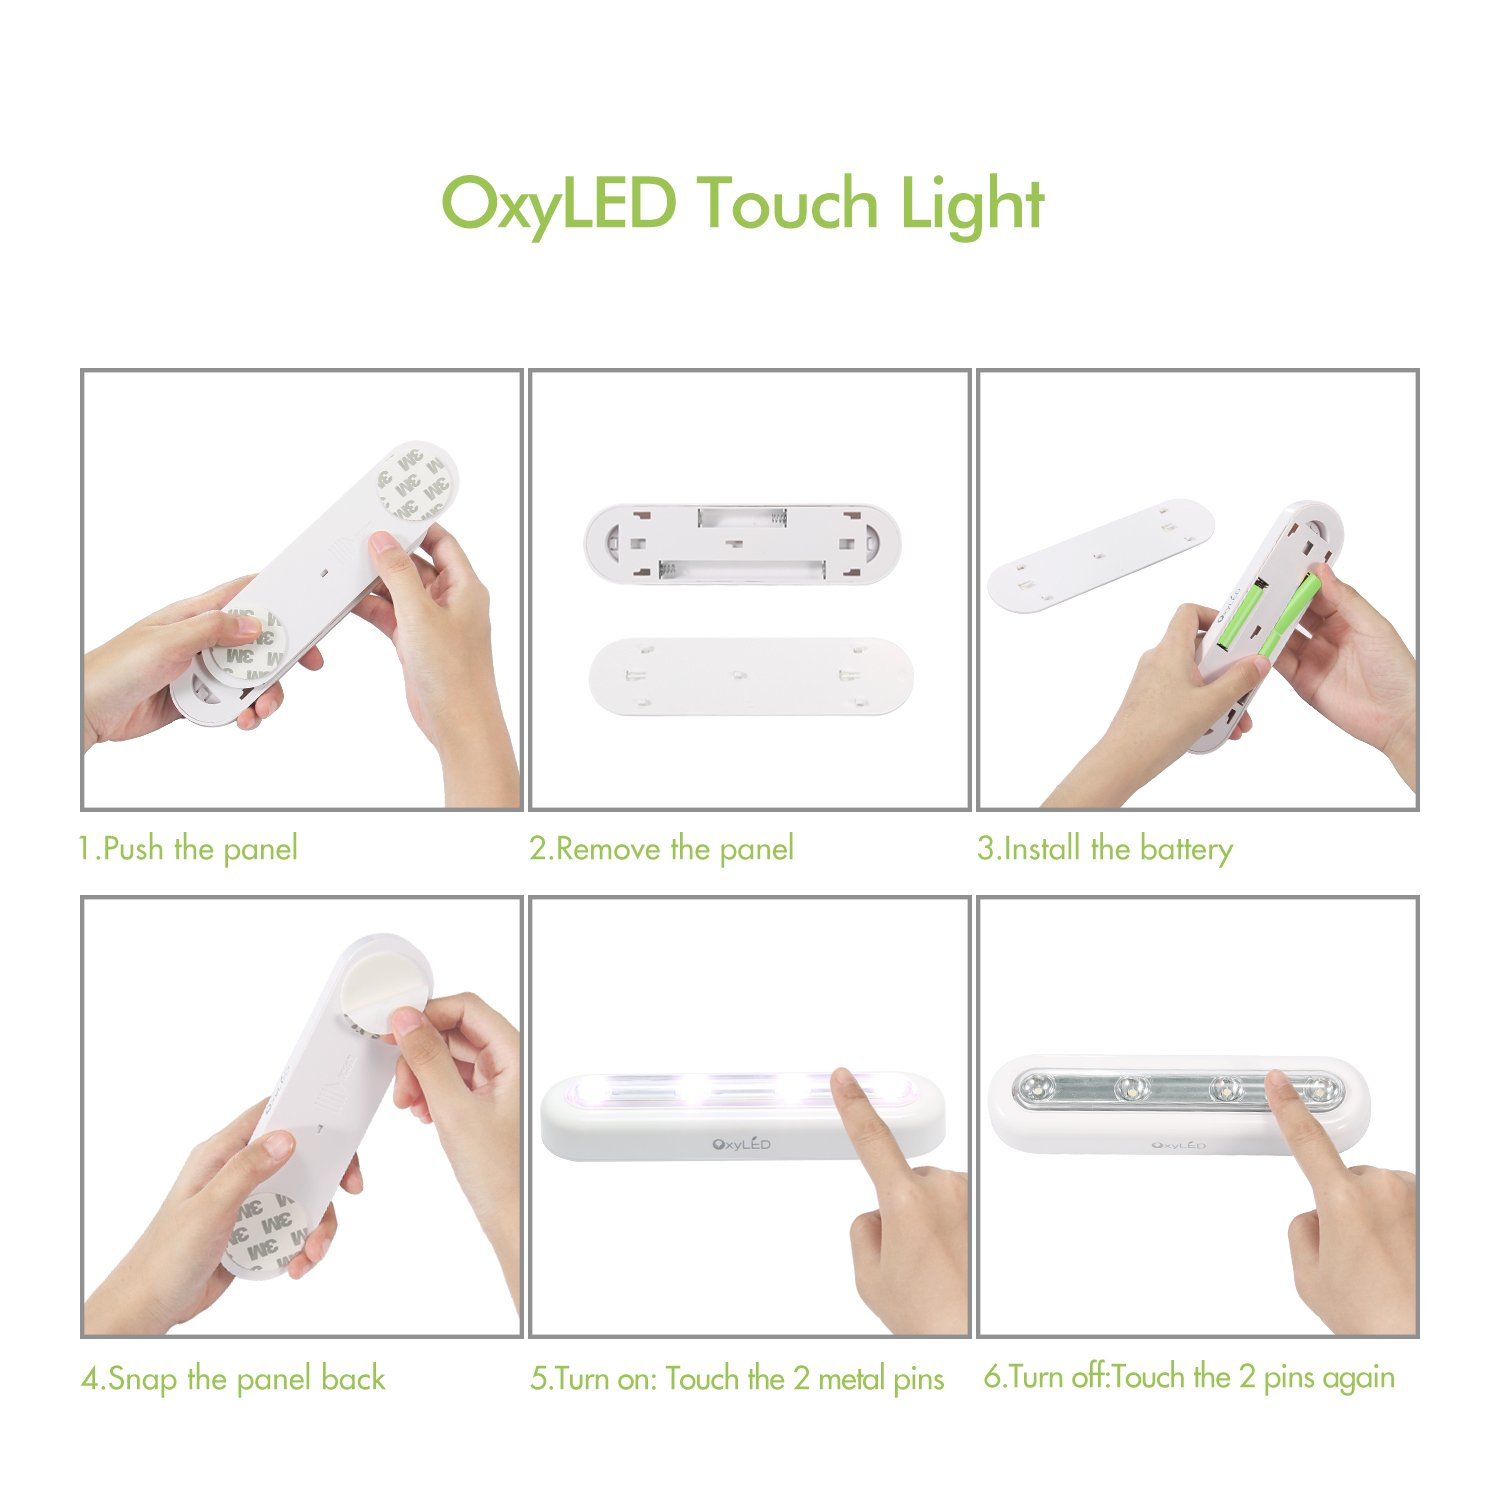 OxyLED Tap Closet Lights, One Touch Light, Stick-on Anywhere 4-Led Touch Tap Light, Cordless Touch Sensor LED Night Light, Battery Operated Stair Safe Lights, 180° Rotation, 3 Pack by OxyLED (Image #5)